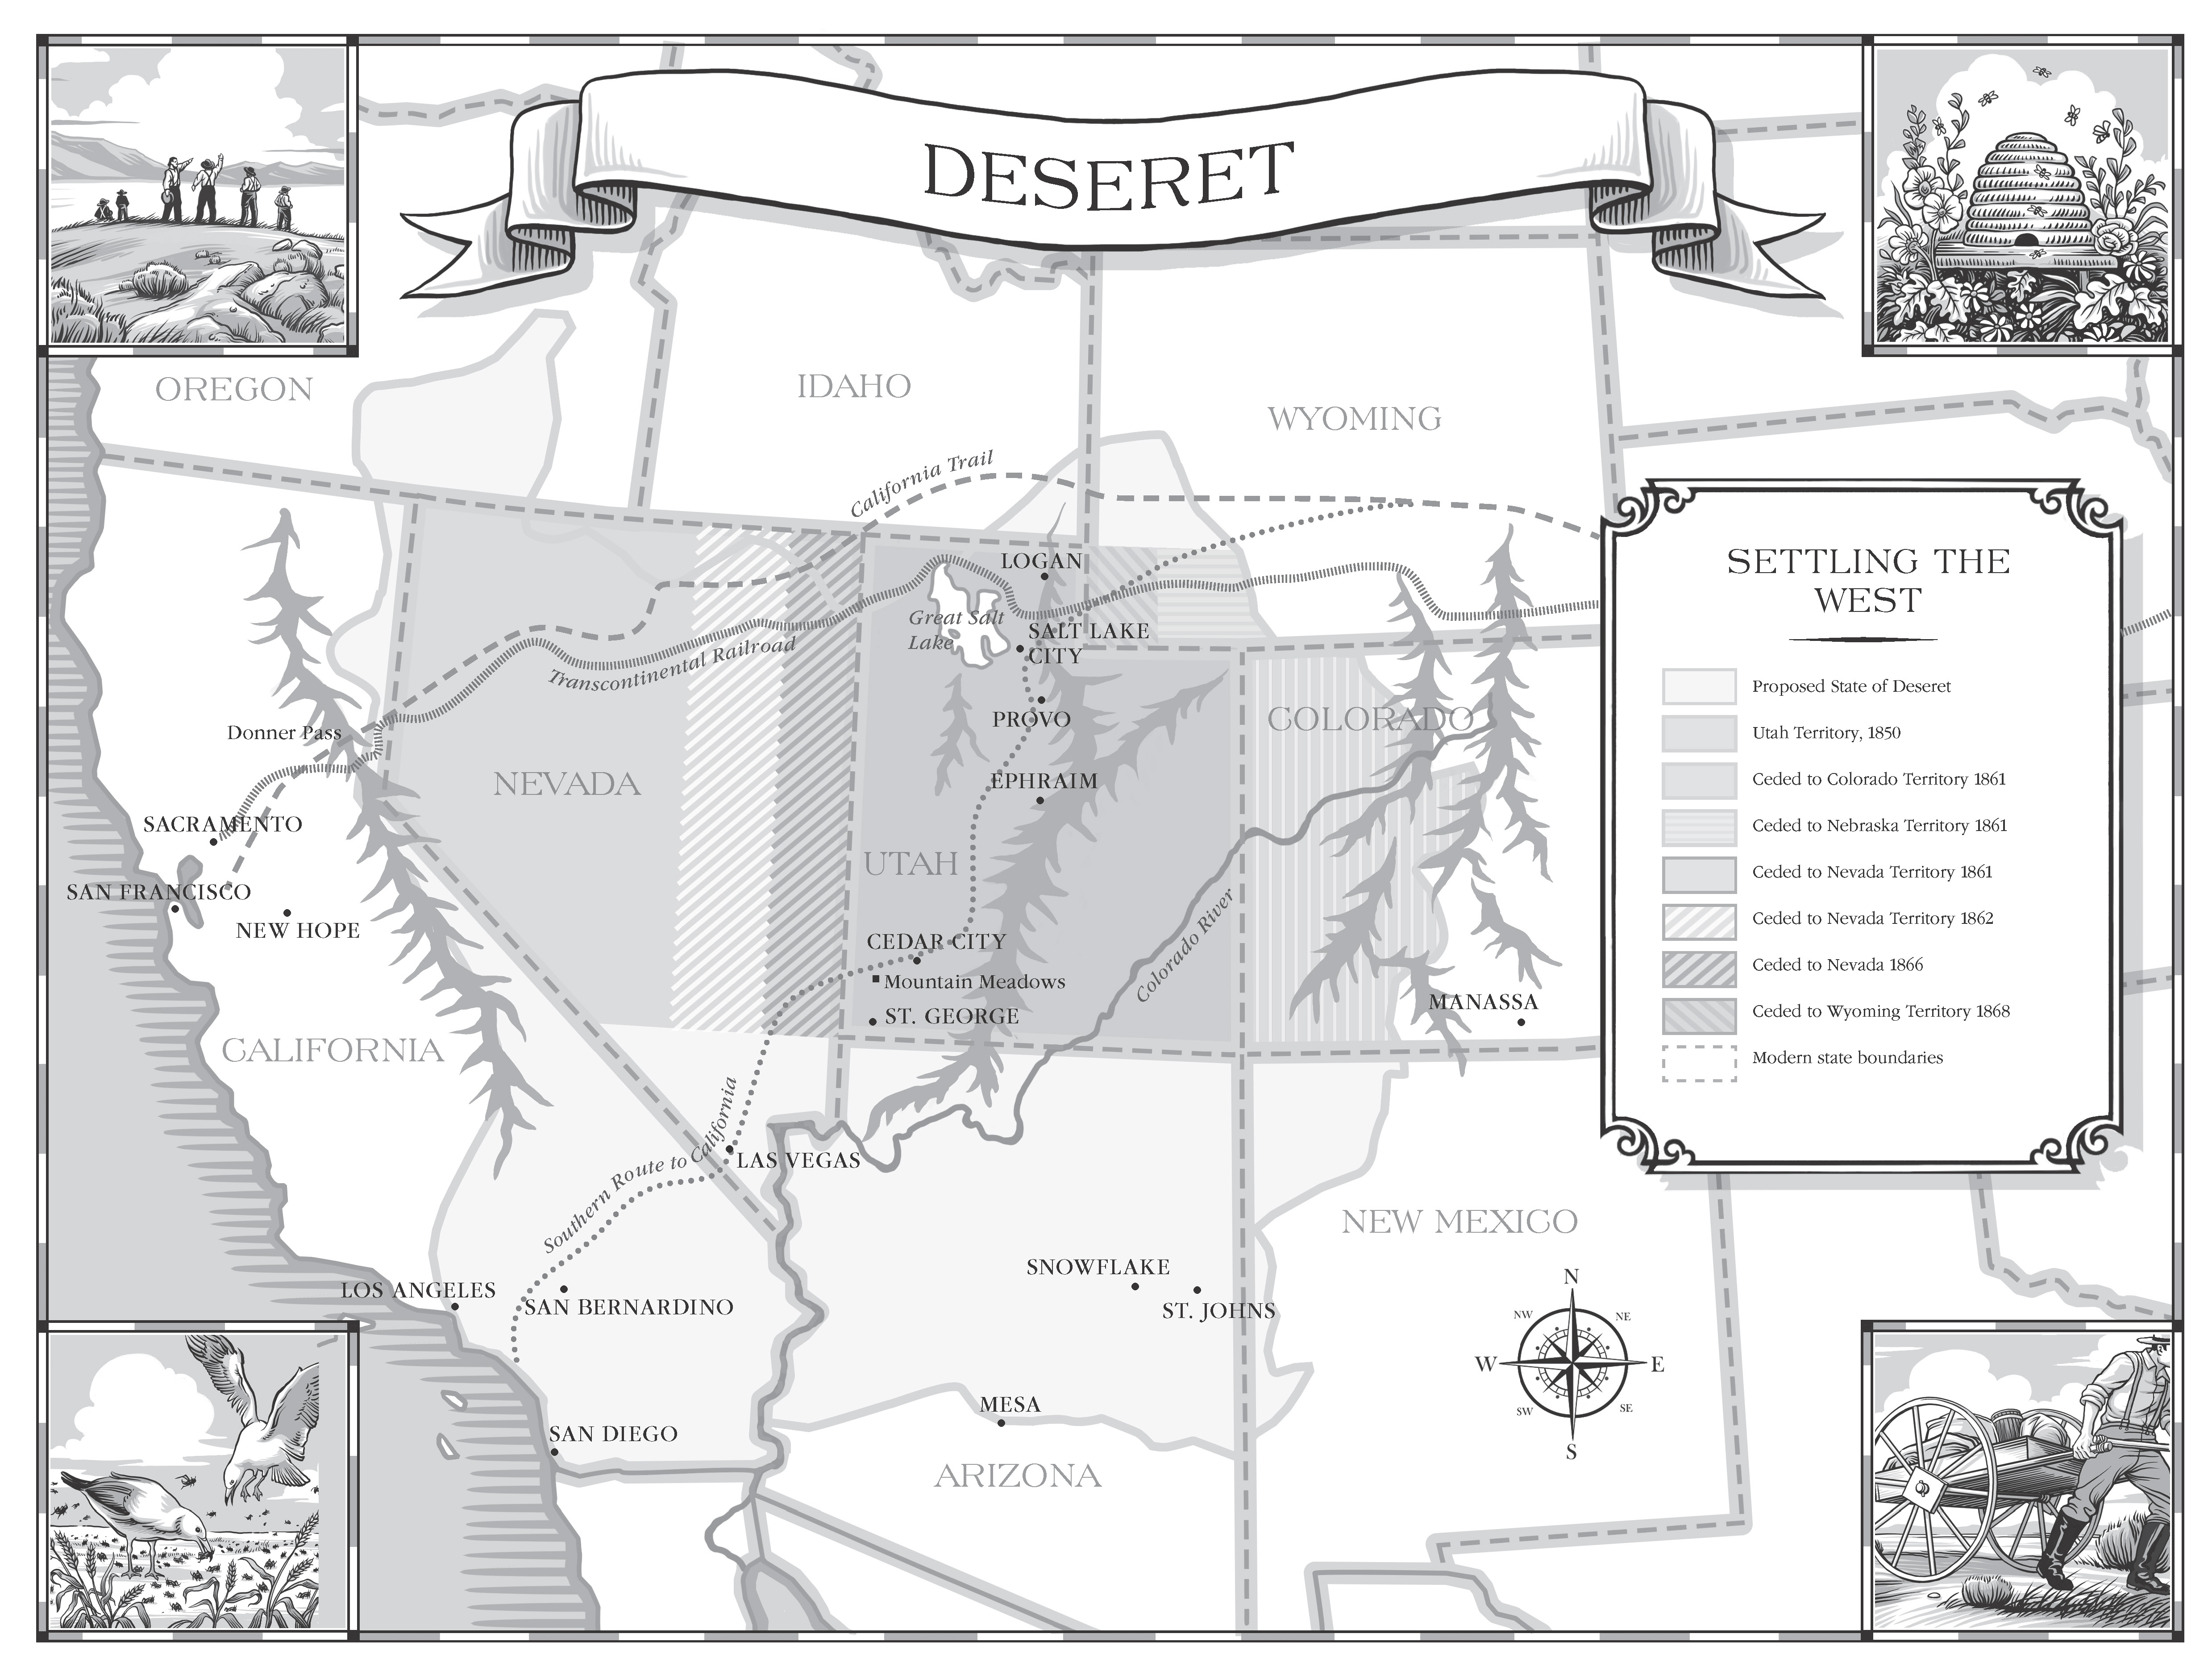 A map of the land that would have made up the state of Deseret.